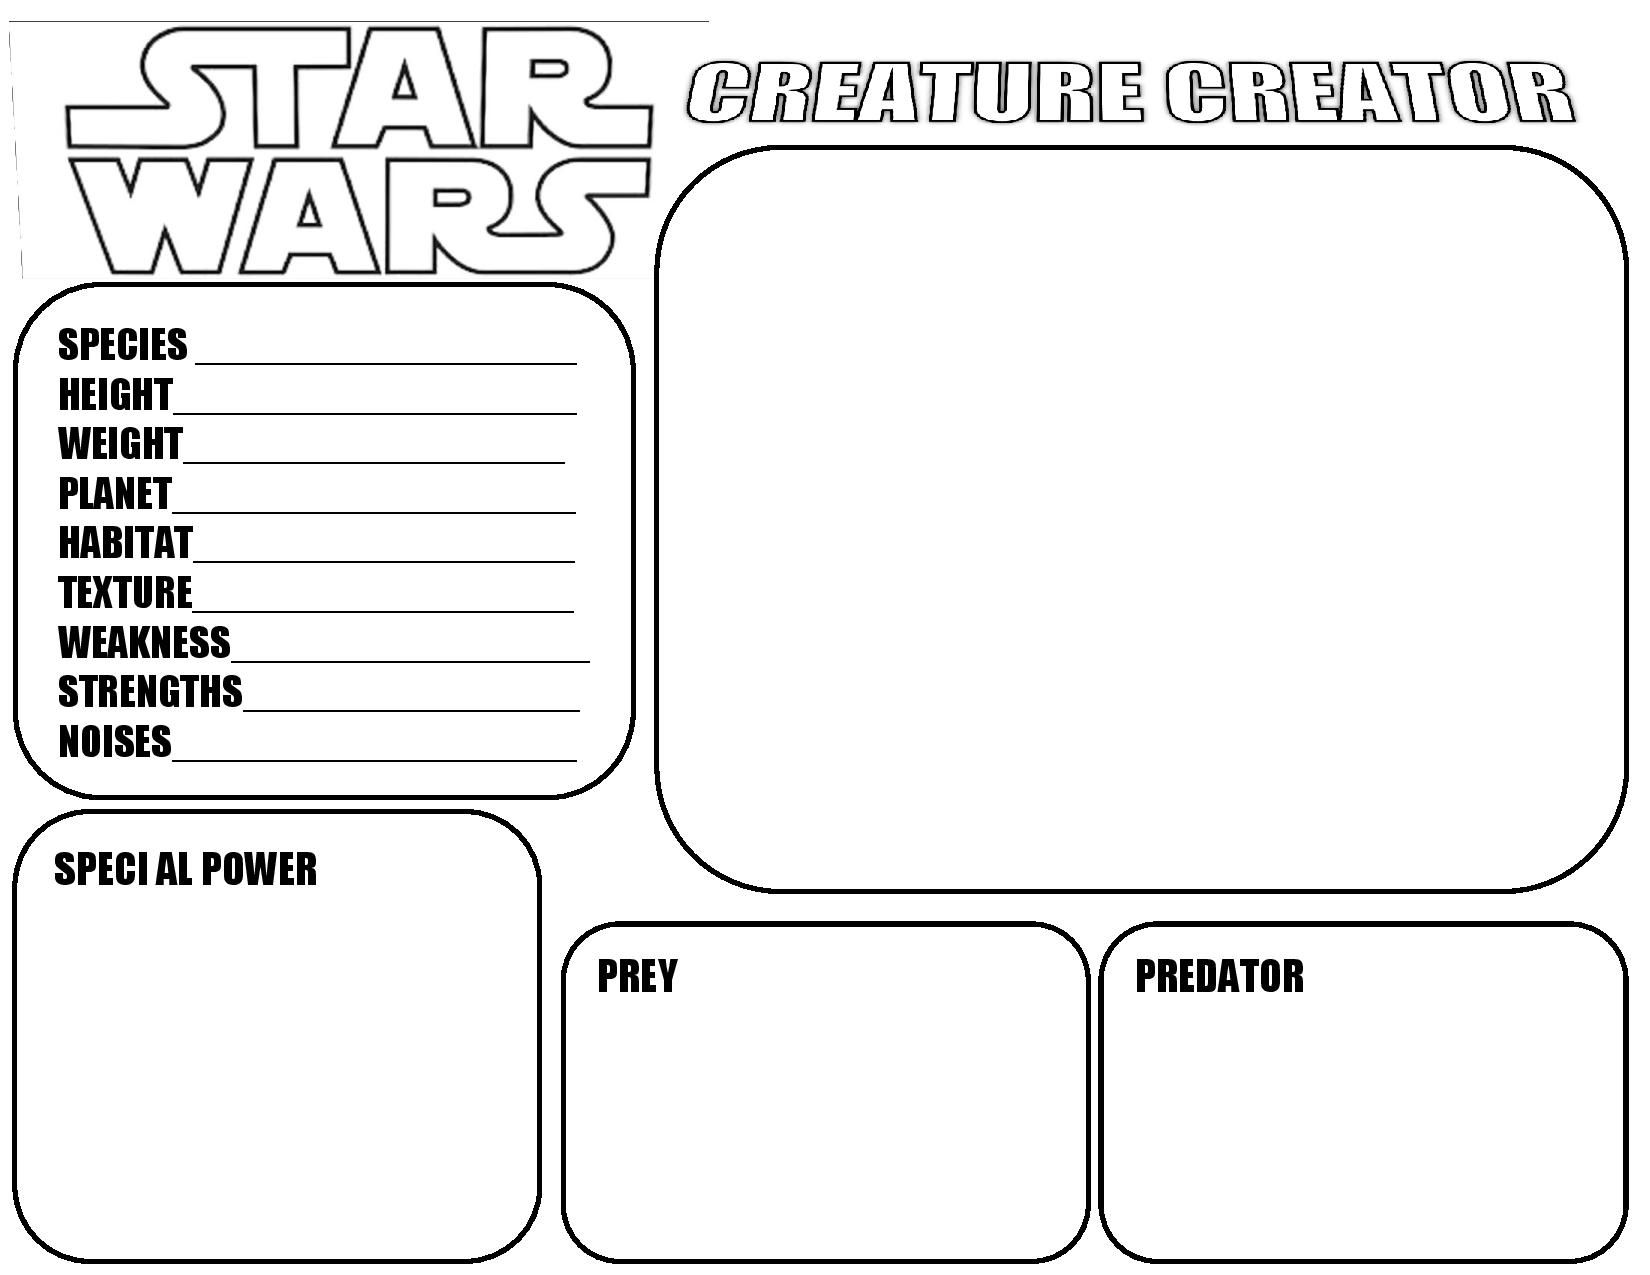 Star Wars Creature Creator